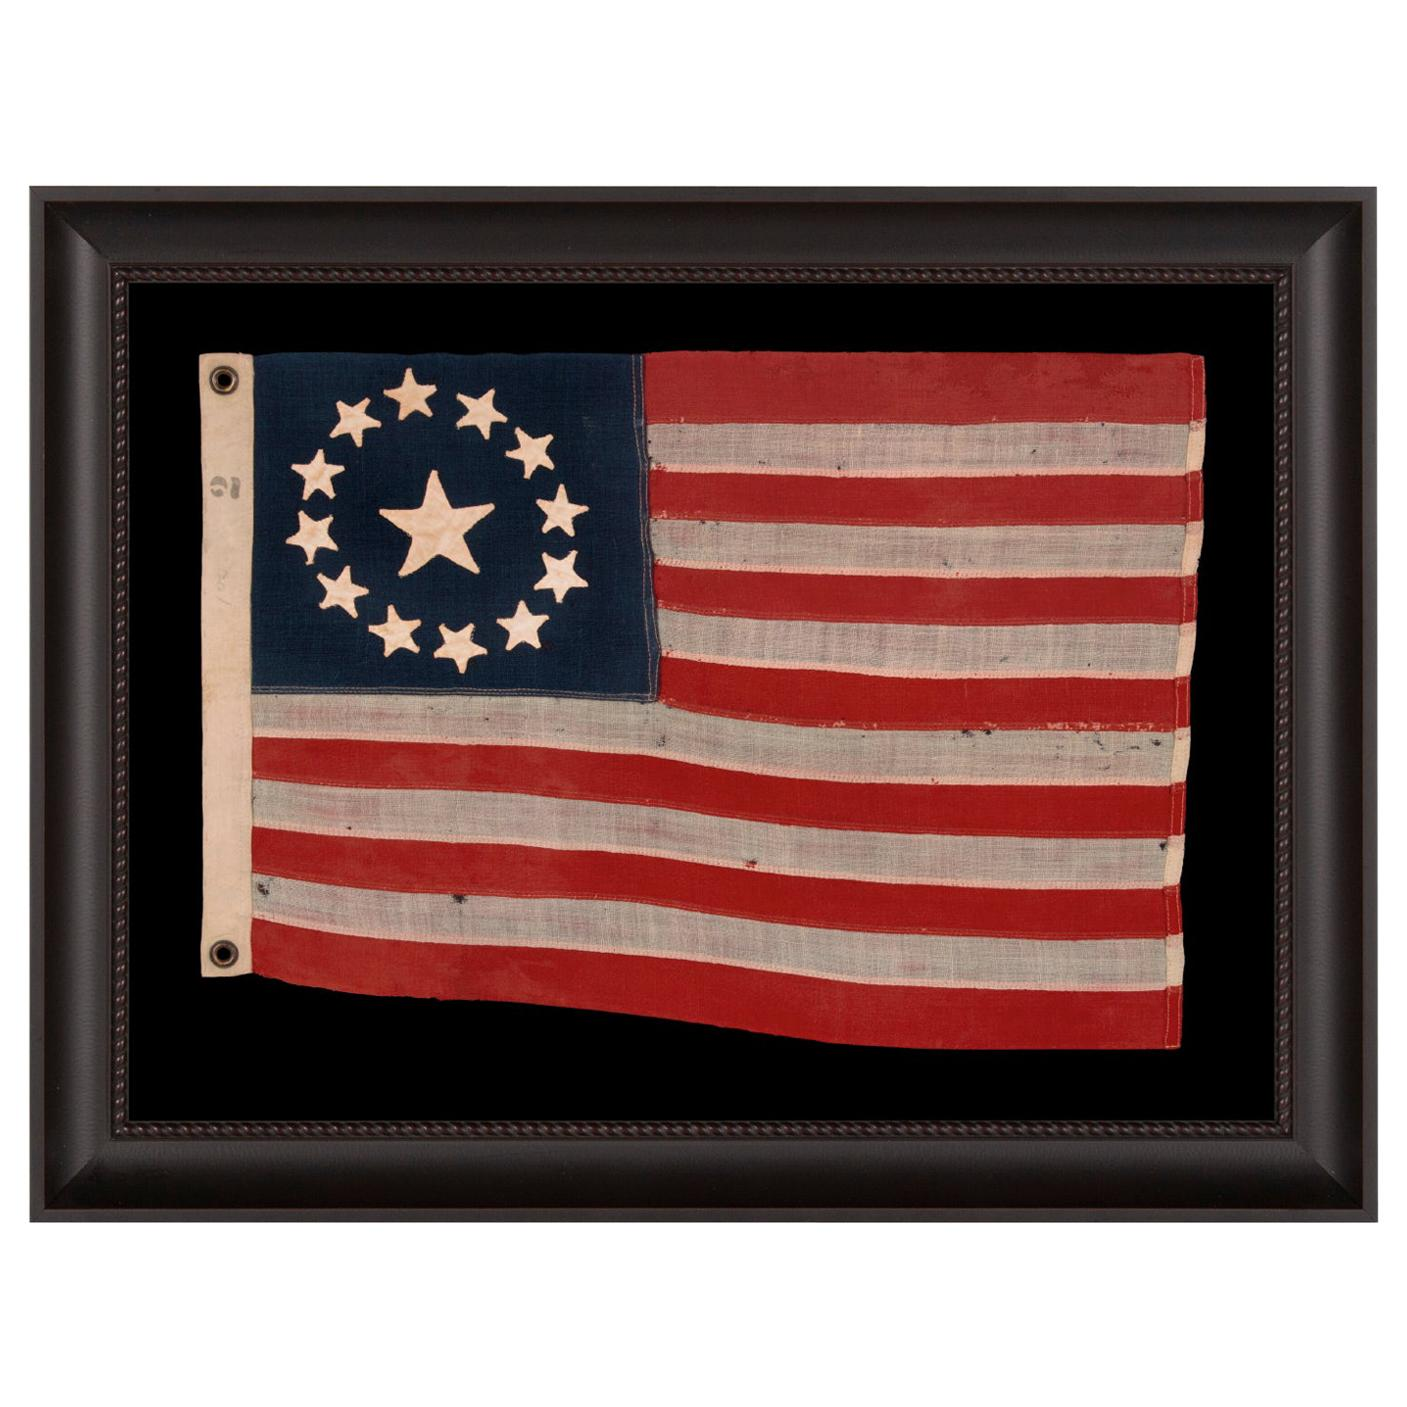 13 Star American Flag with Hand-Sewn Stars in the 3rd Maryland Pattern